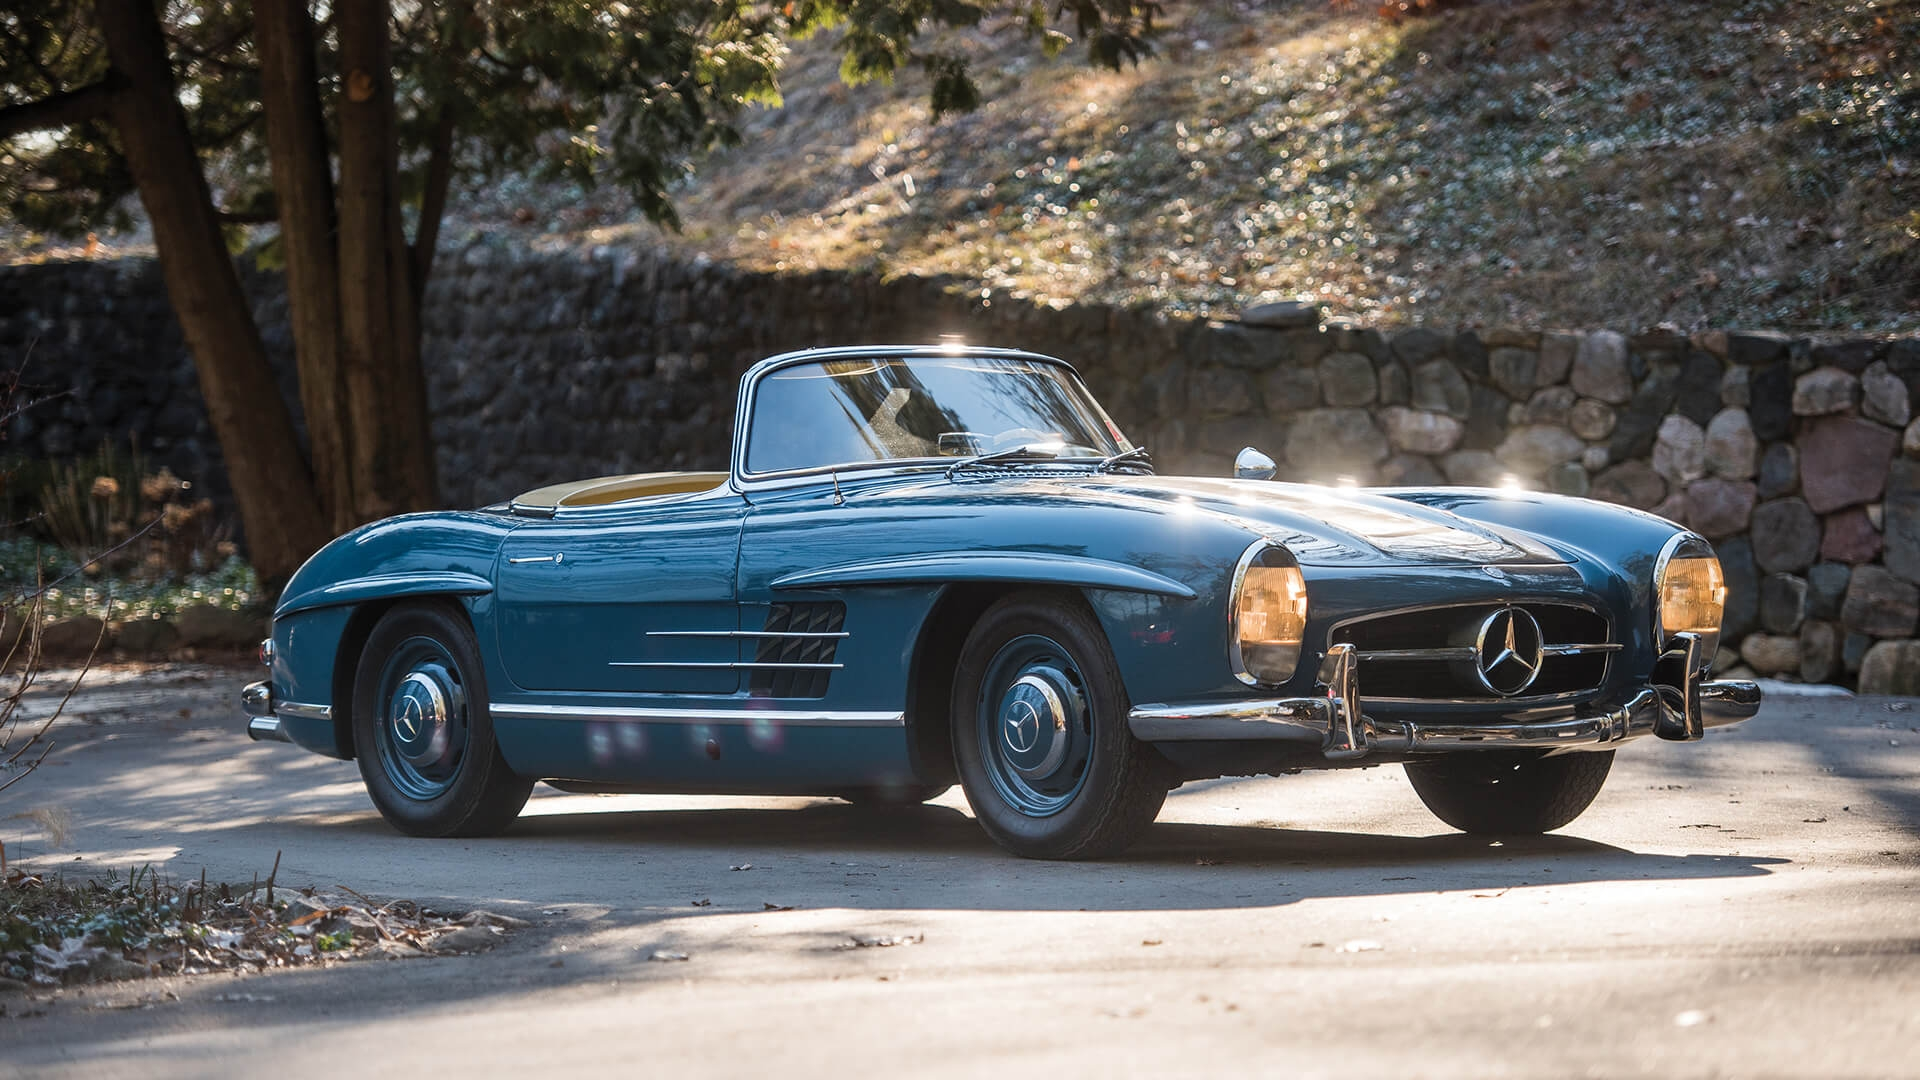 K500 Classic Cars Index - A Guide to Classic Cars